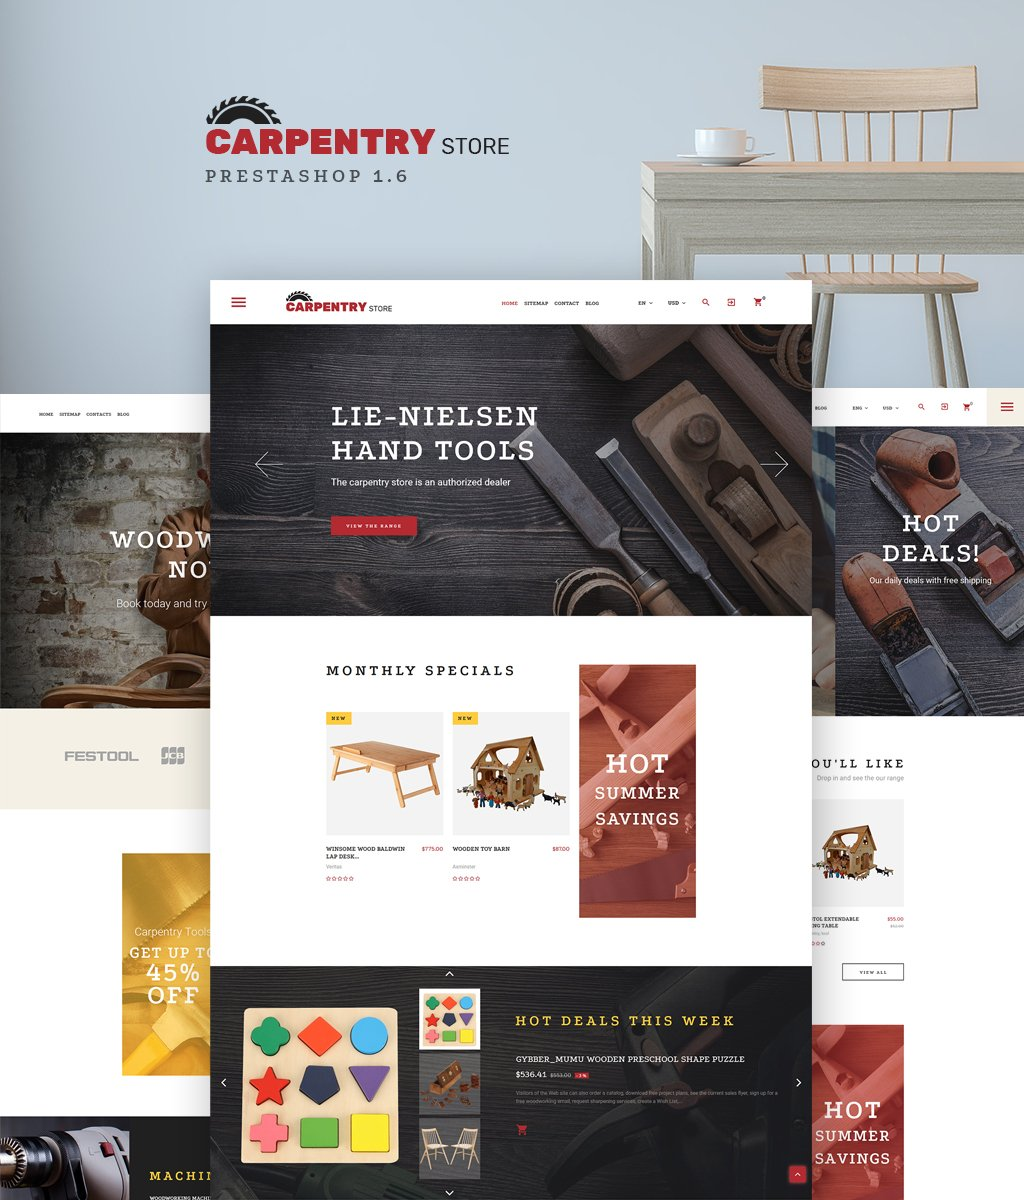 Carpentry Store PrestaShop Theme